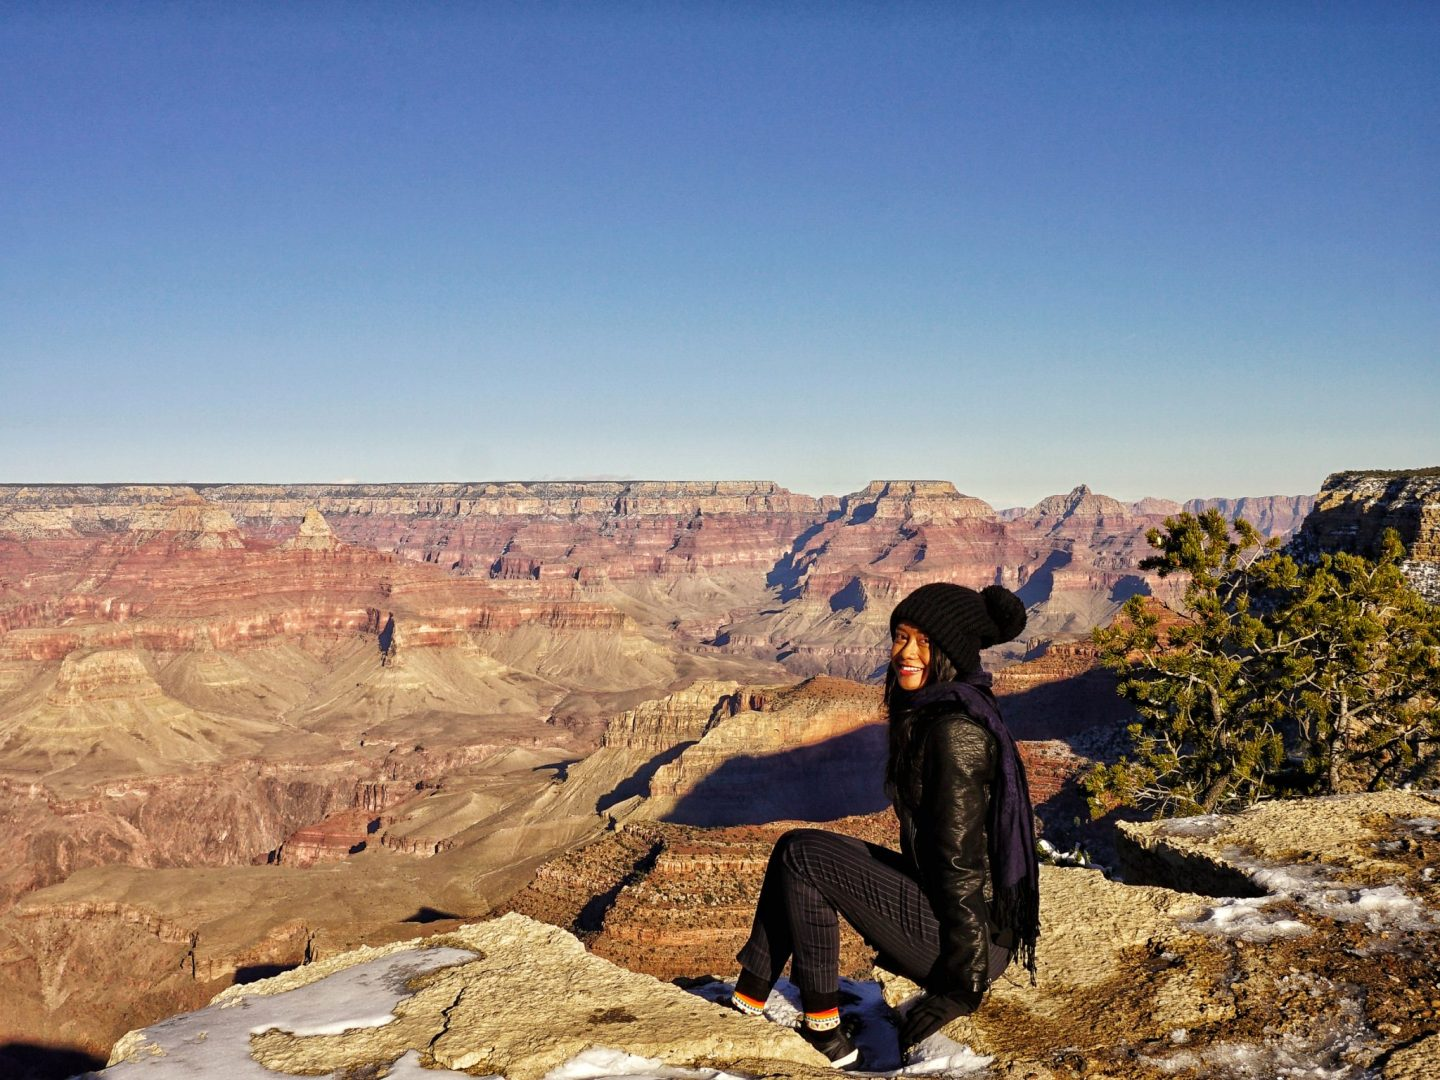 Visiting the Grand Canyon in January